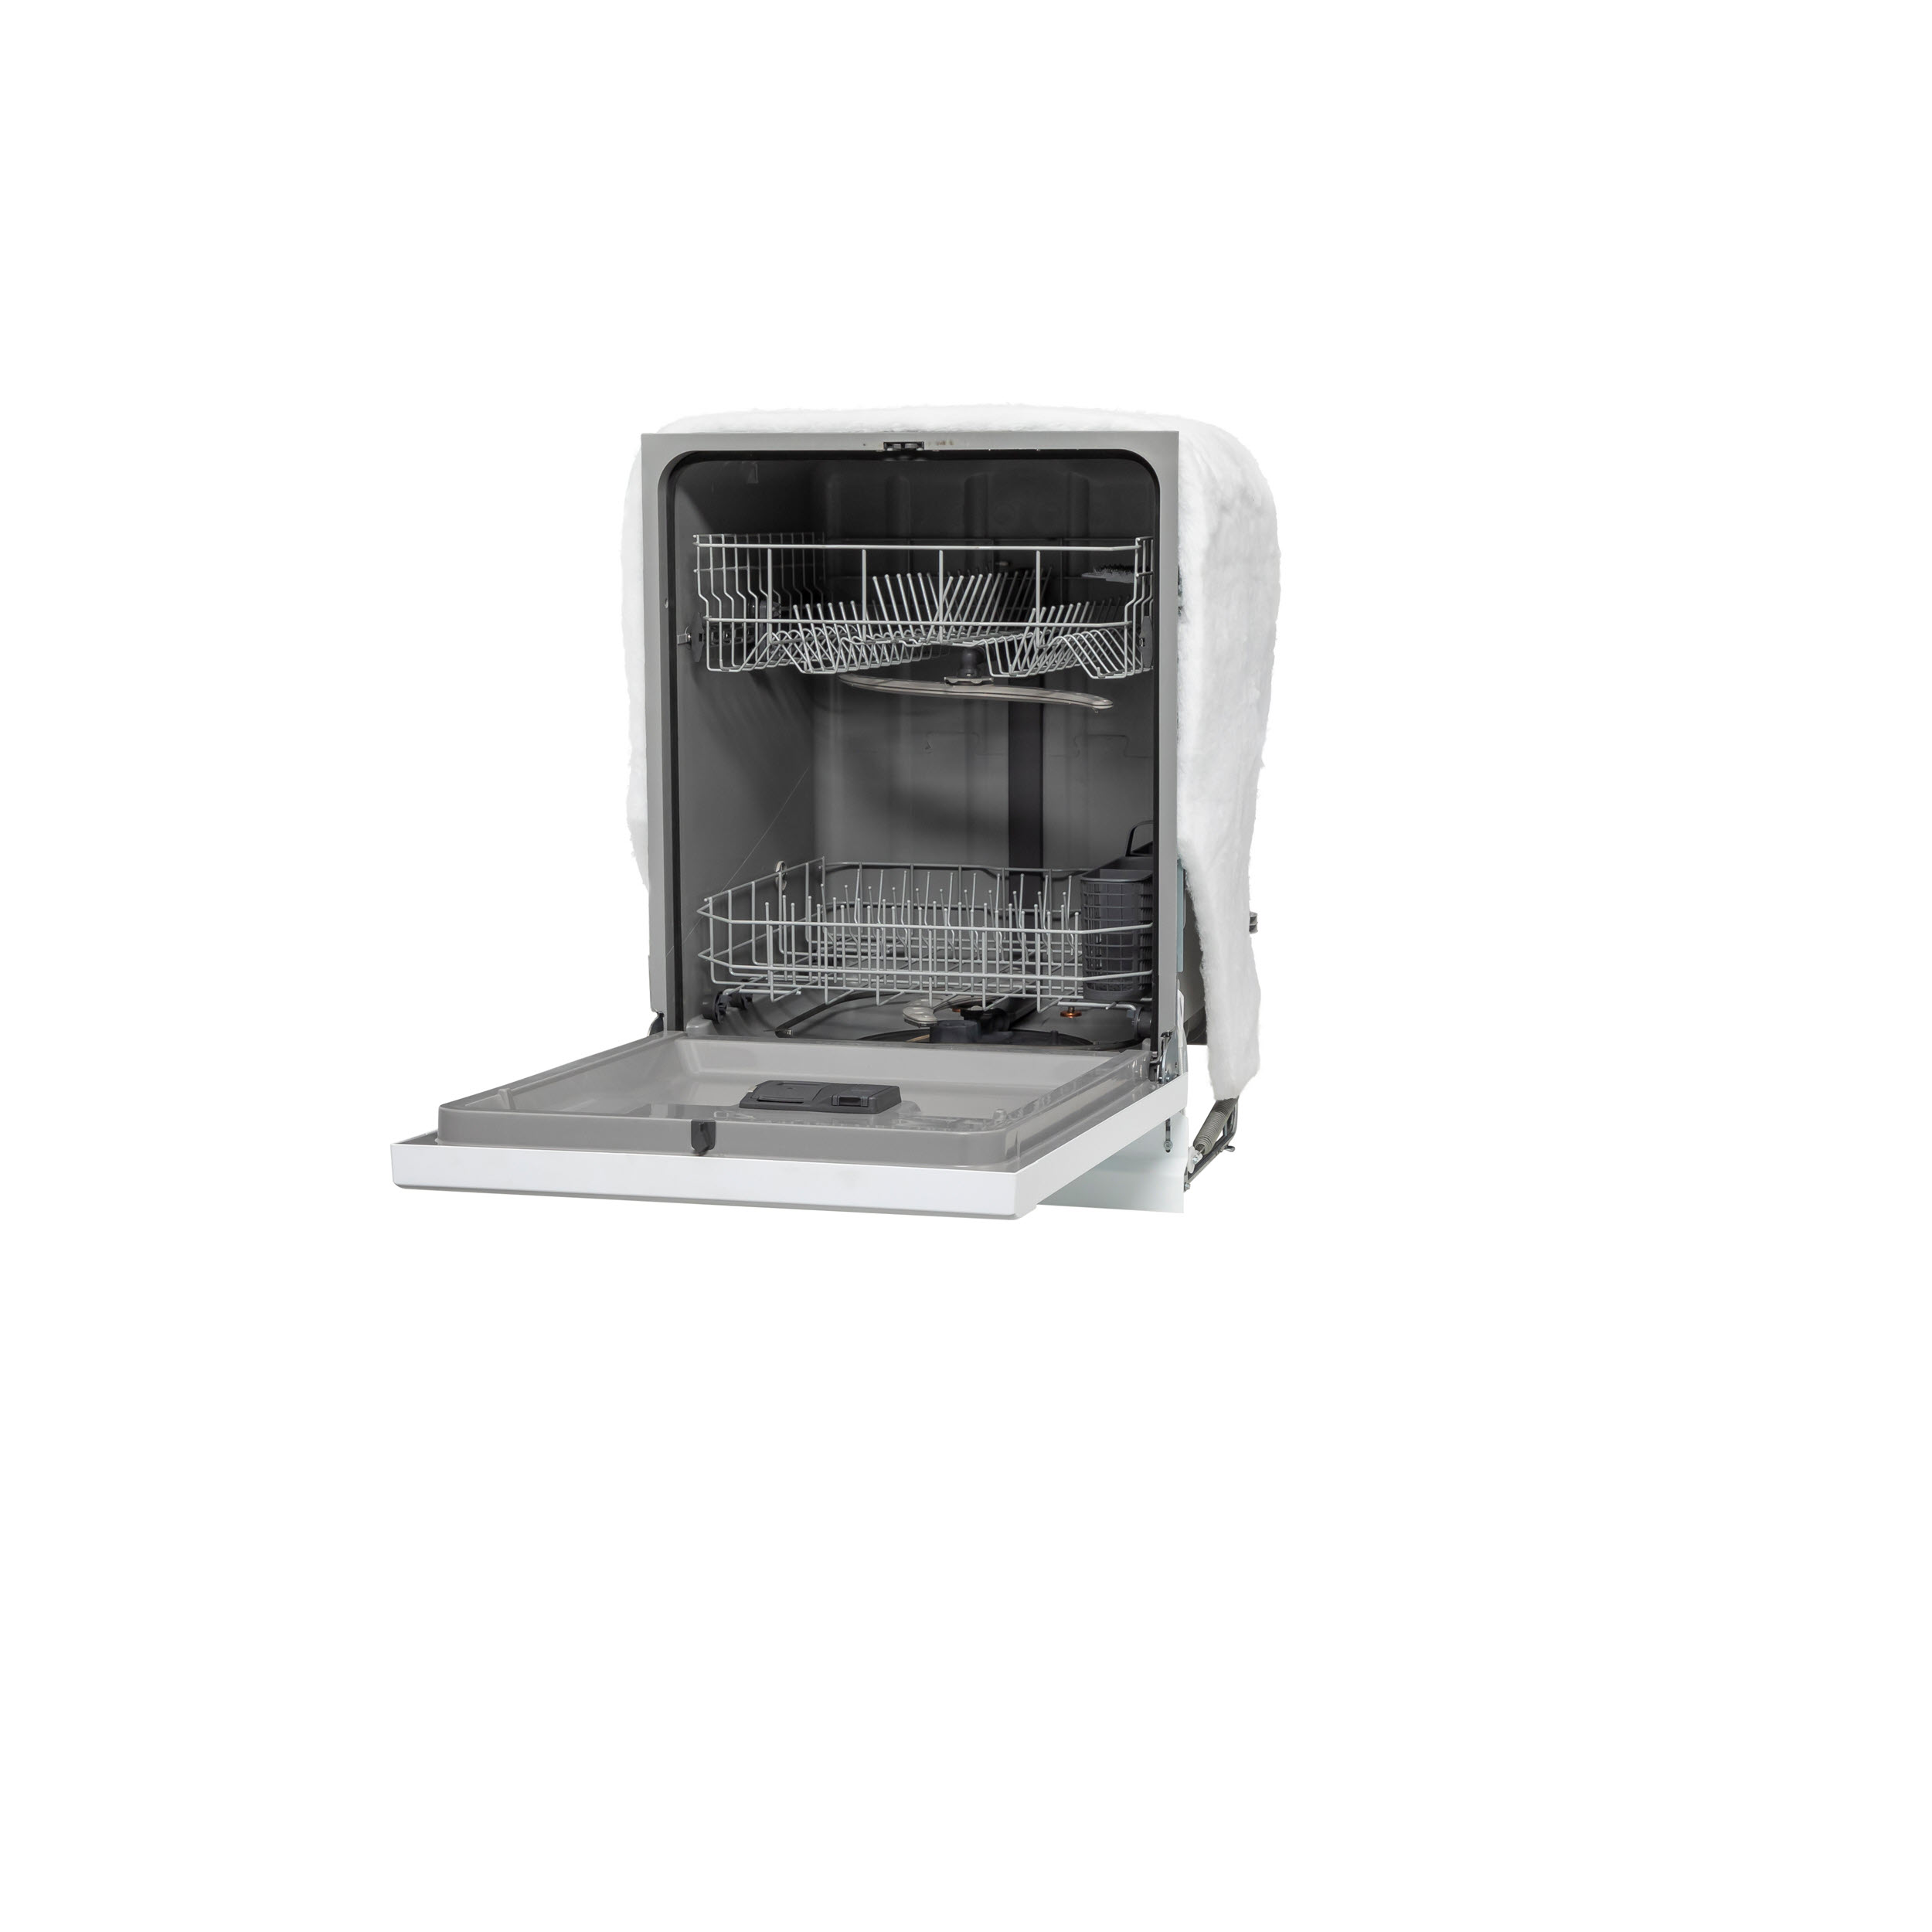 Model: GDF535PGRWW | GE GE® Dishwasher with Front Controls